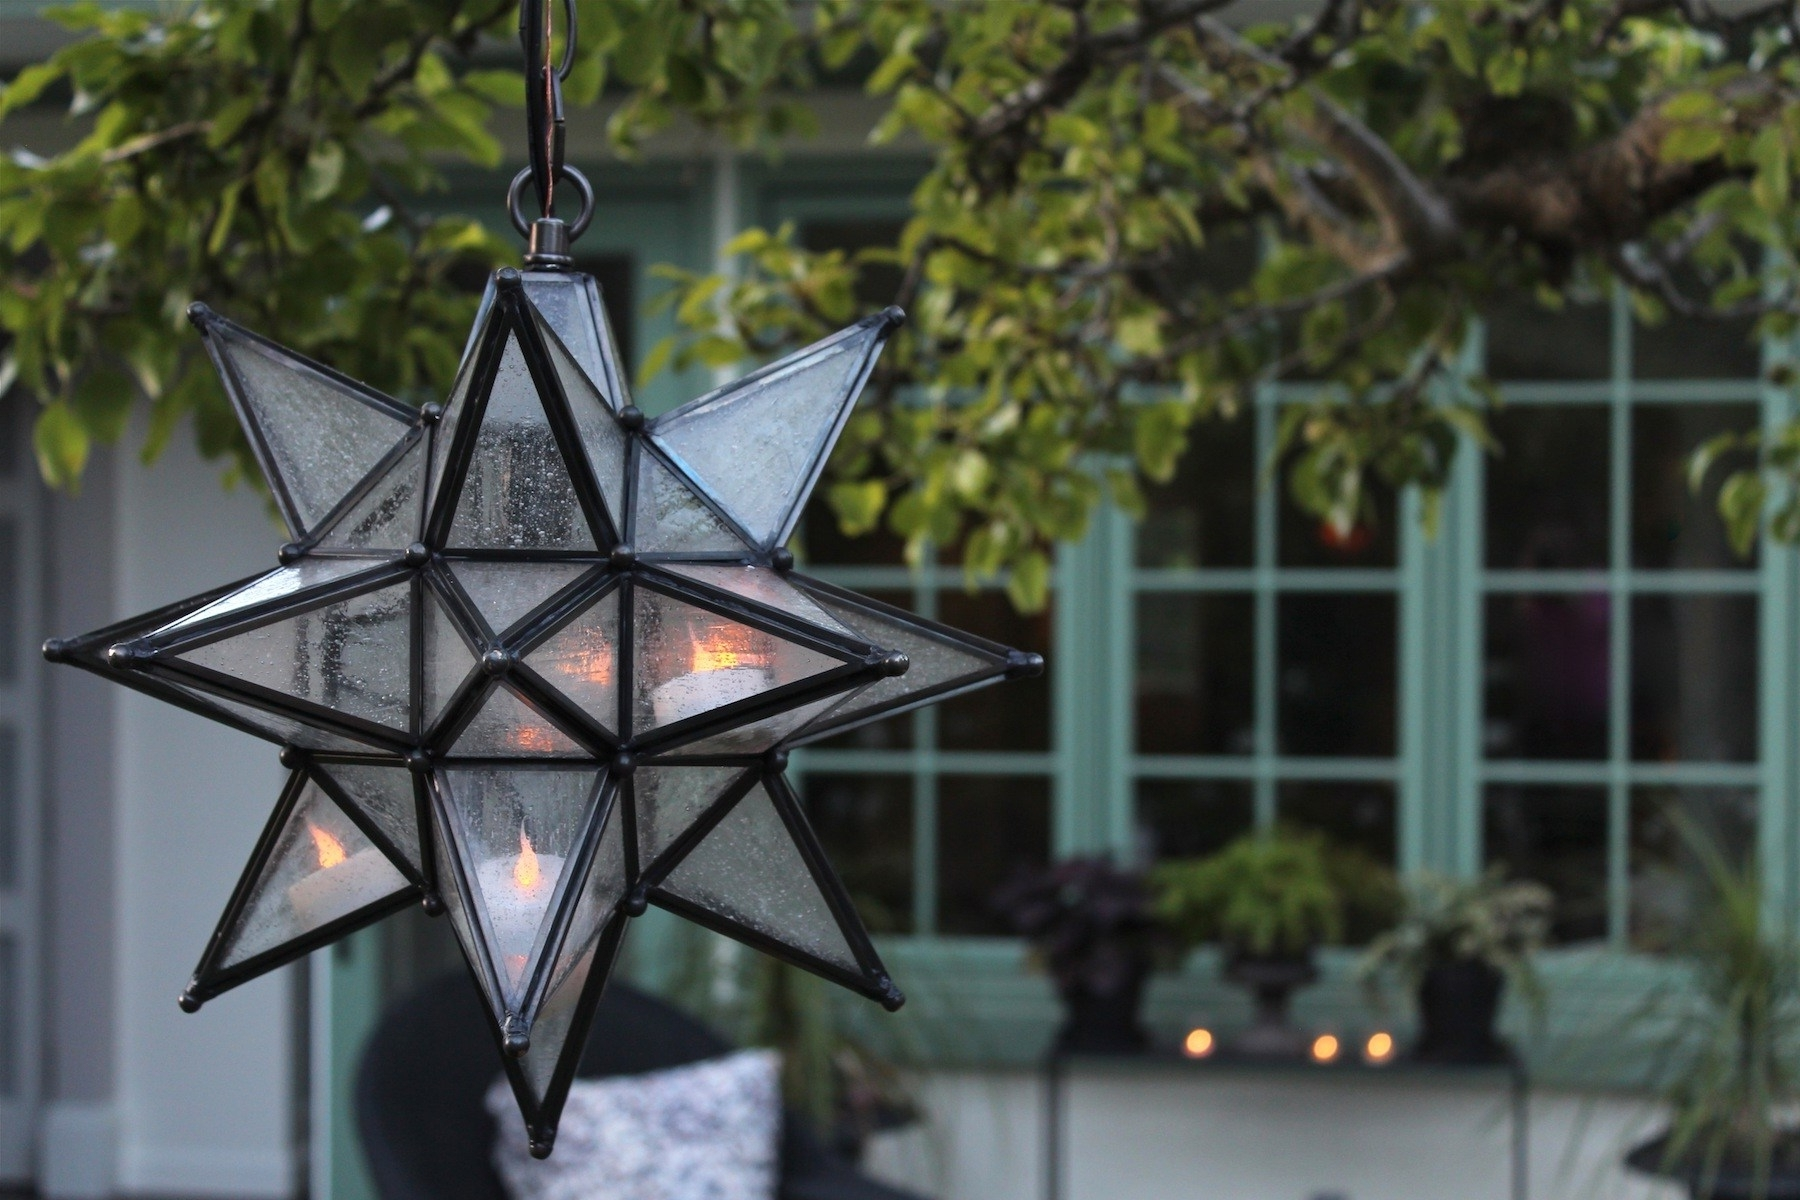 Terrific Garden In Elka Pottery Barn Pendant Olivia Star Pendant To Throughout Most Current Outdoor Lanterns At Pottery Barn (View 7 of 20)